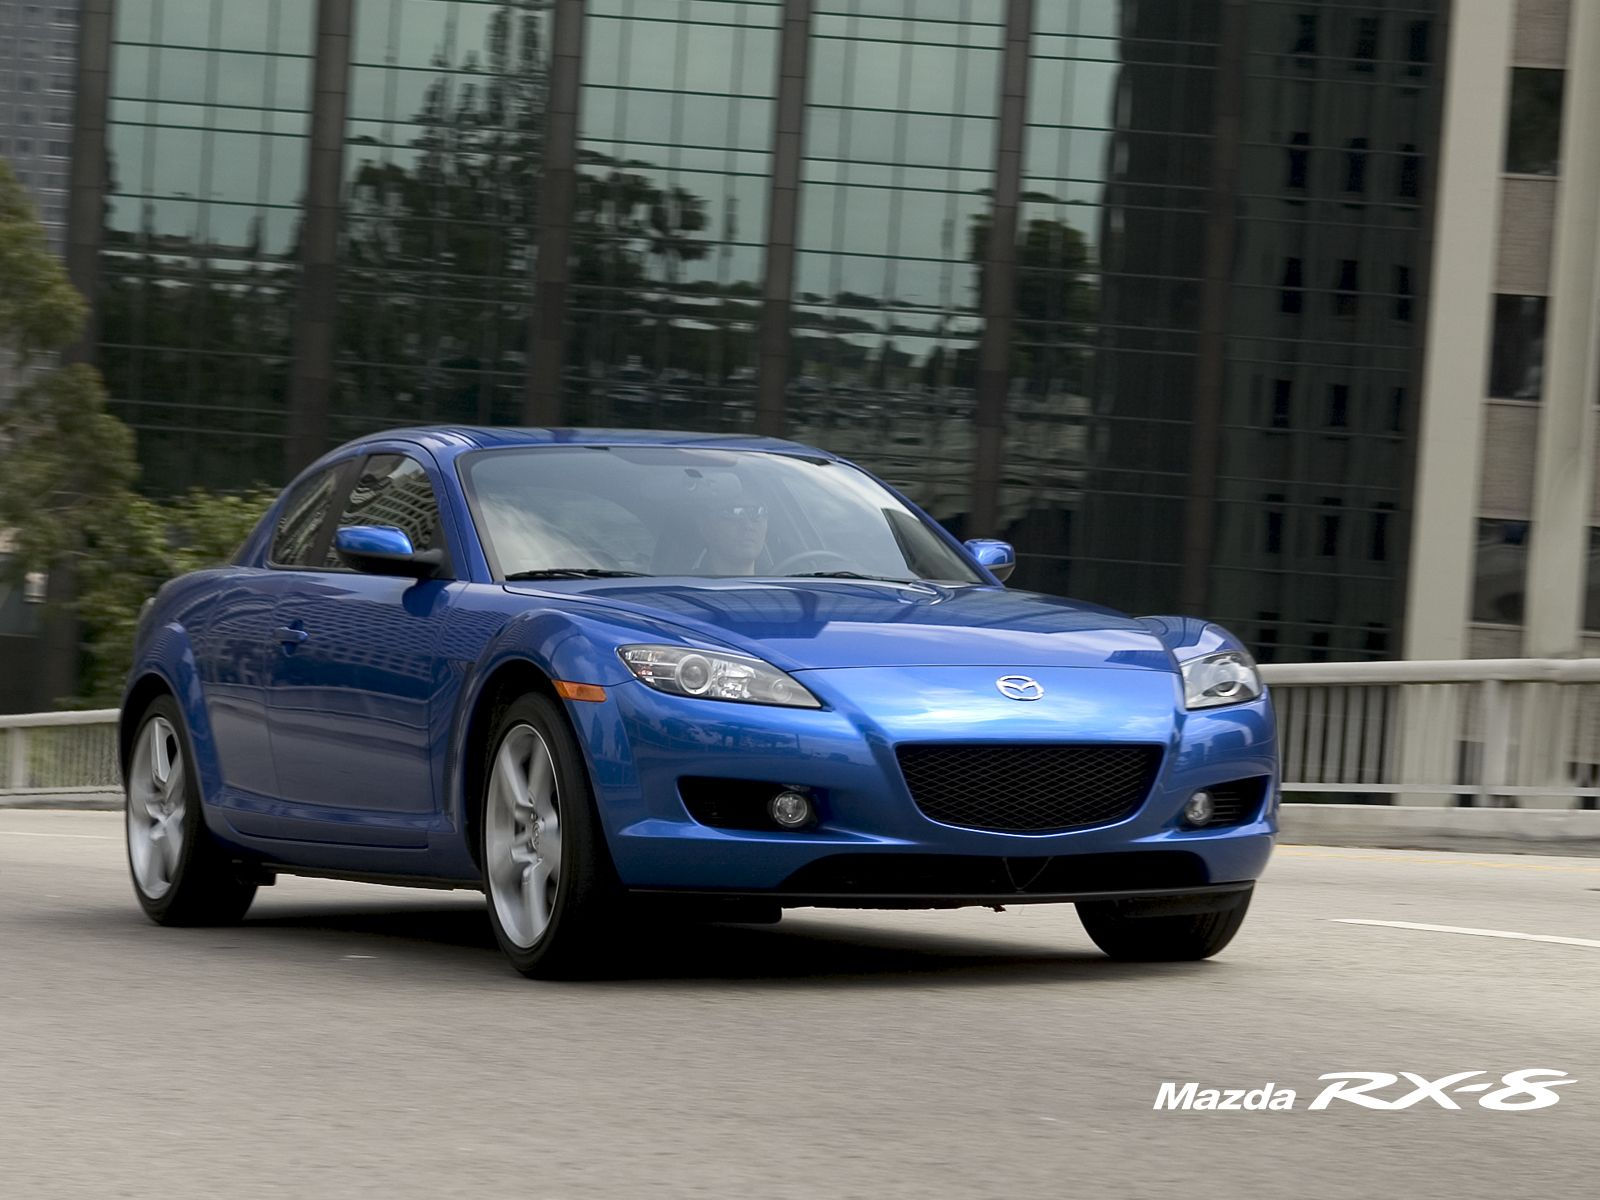 Stock 2007 Mazda RX-8 1/4 mile Drag Racing timeslip specs 0-60 ...